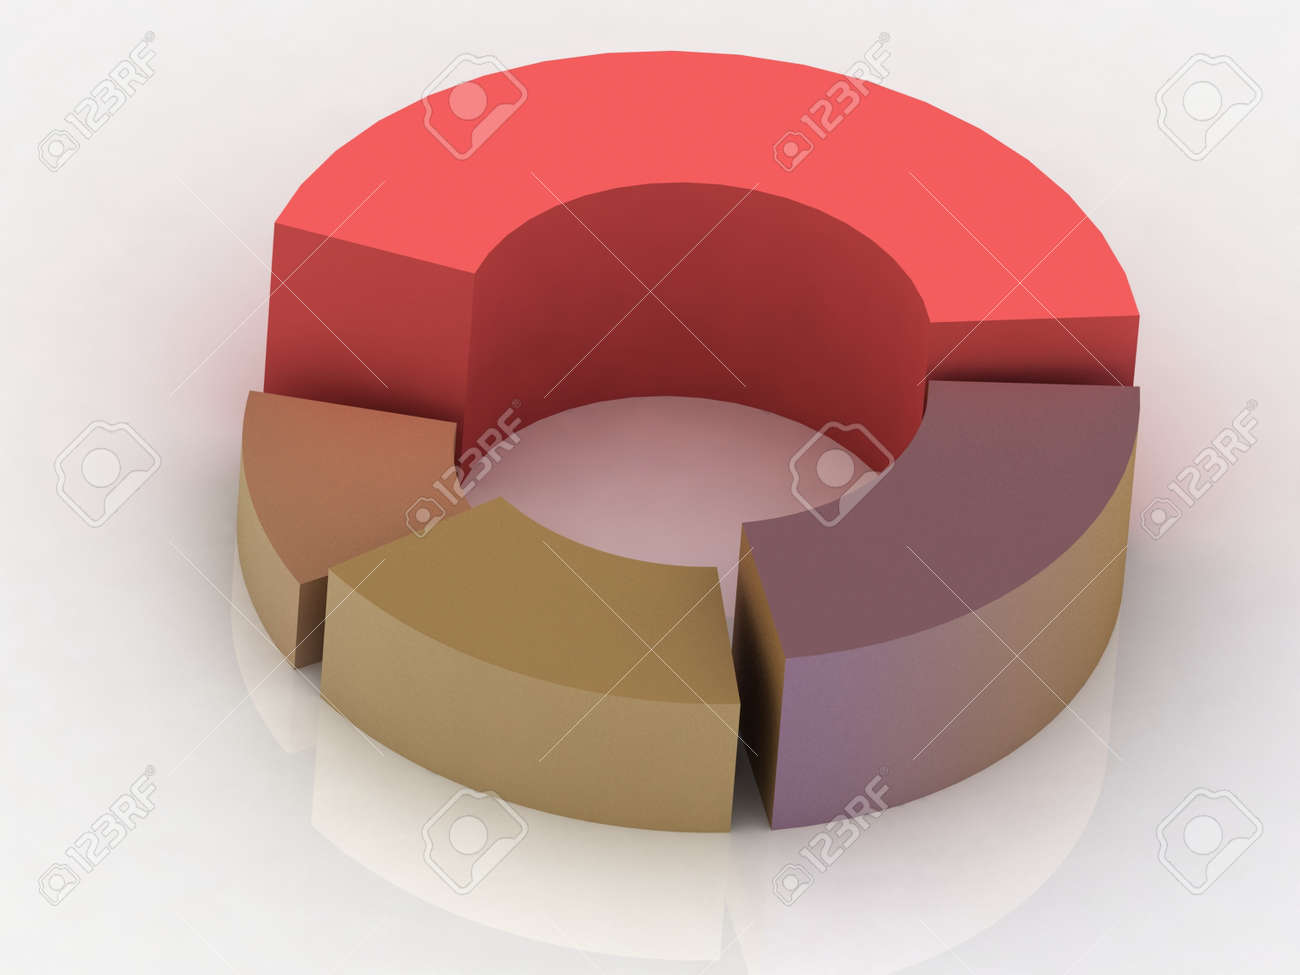 hight resolution of 3d circular diagram on white background stock photo 11946472